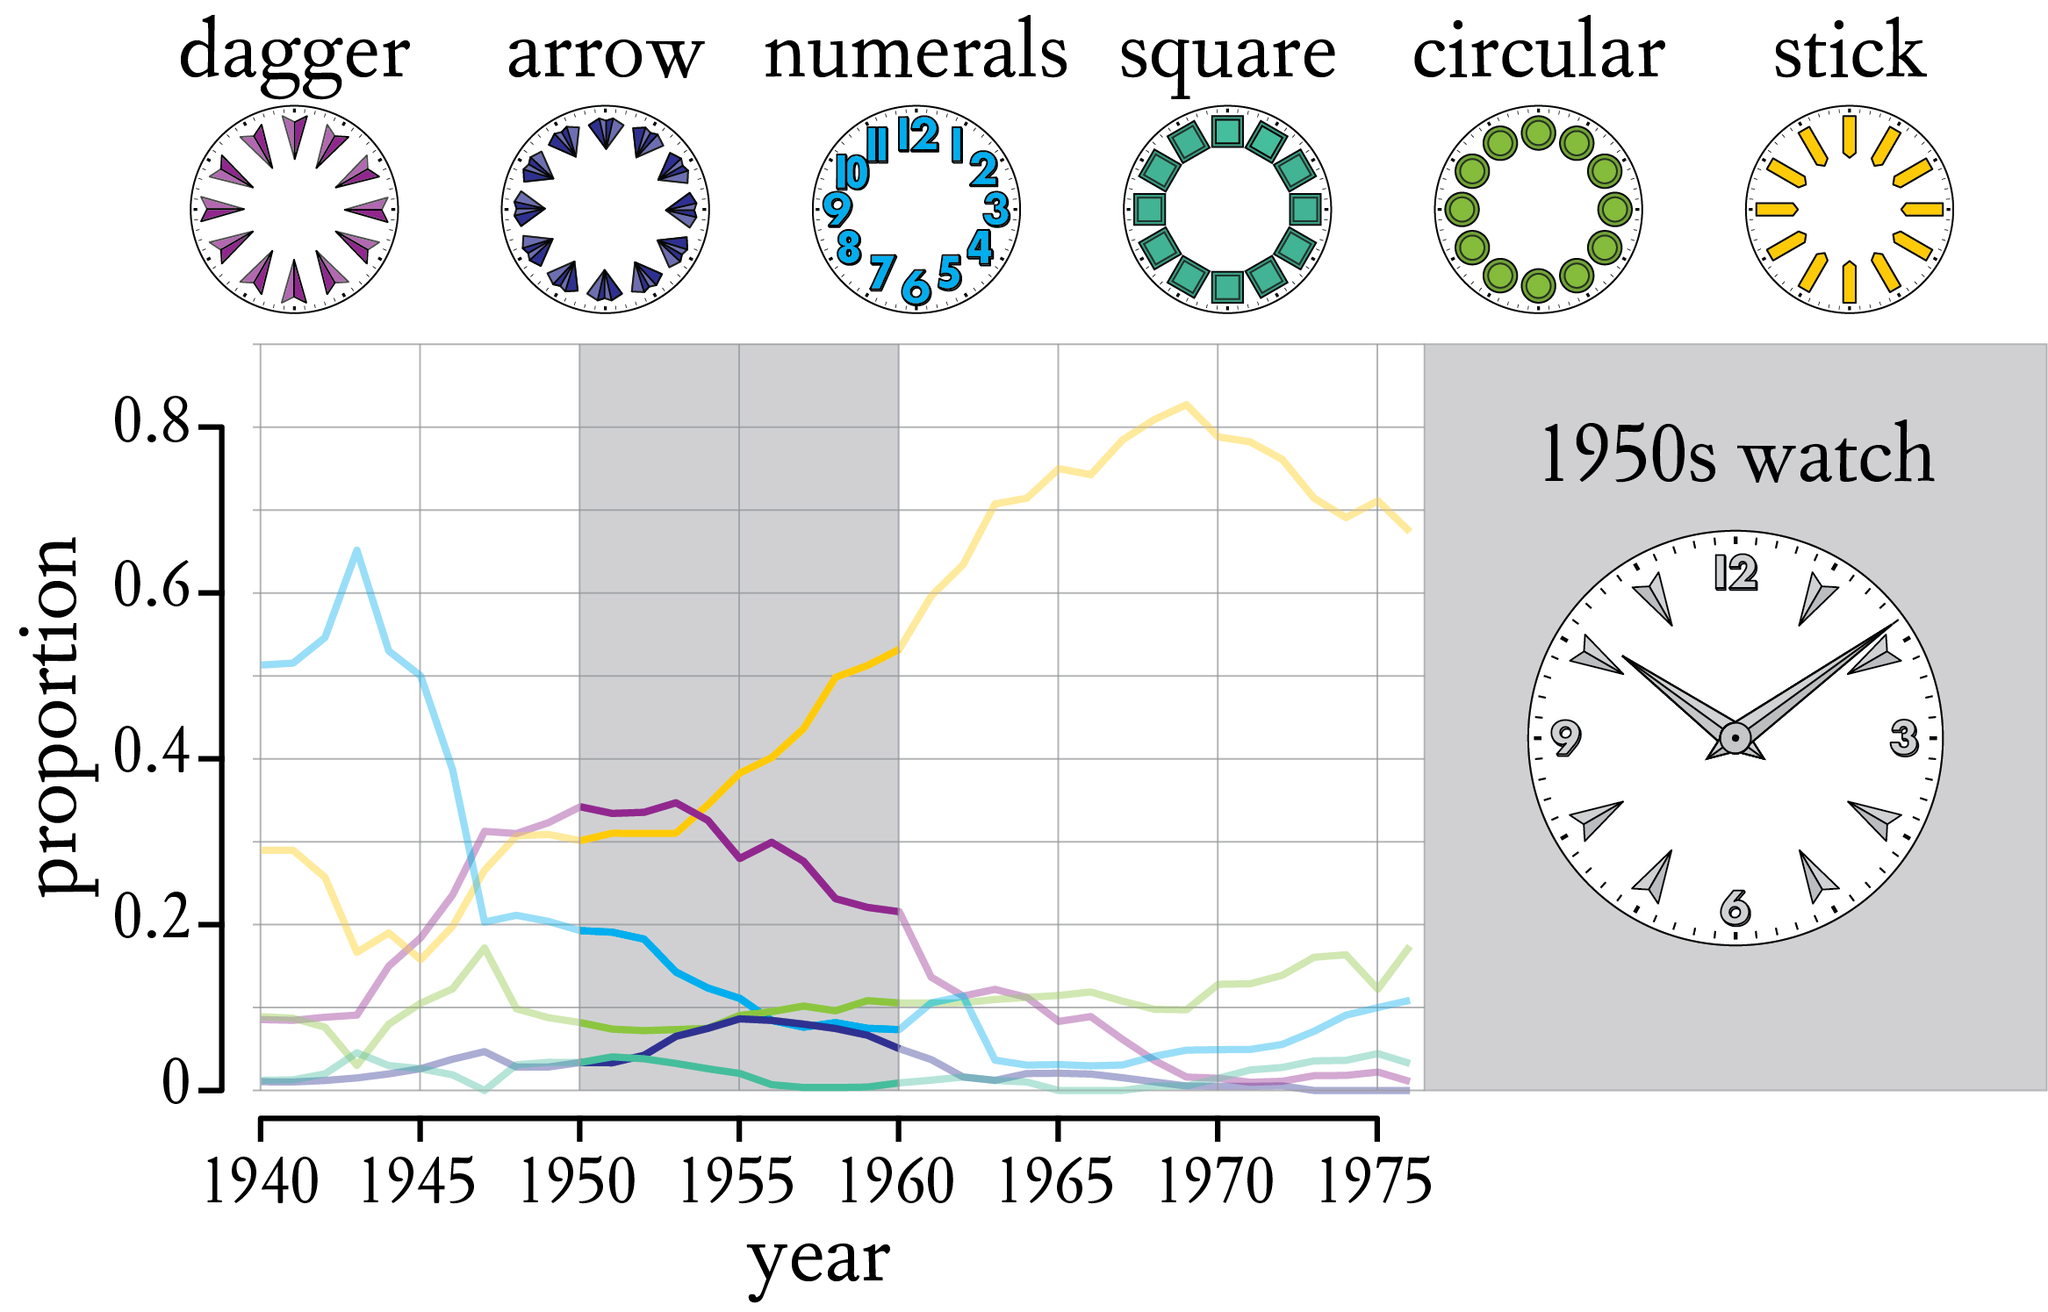 Distribution of Hour Marker between 1940 and 1975: Dagger, Arrow, Stick, Circular, Square, Numerals